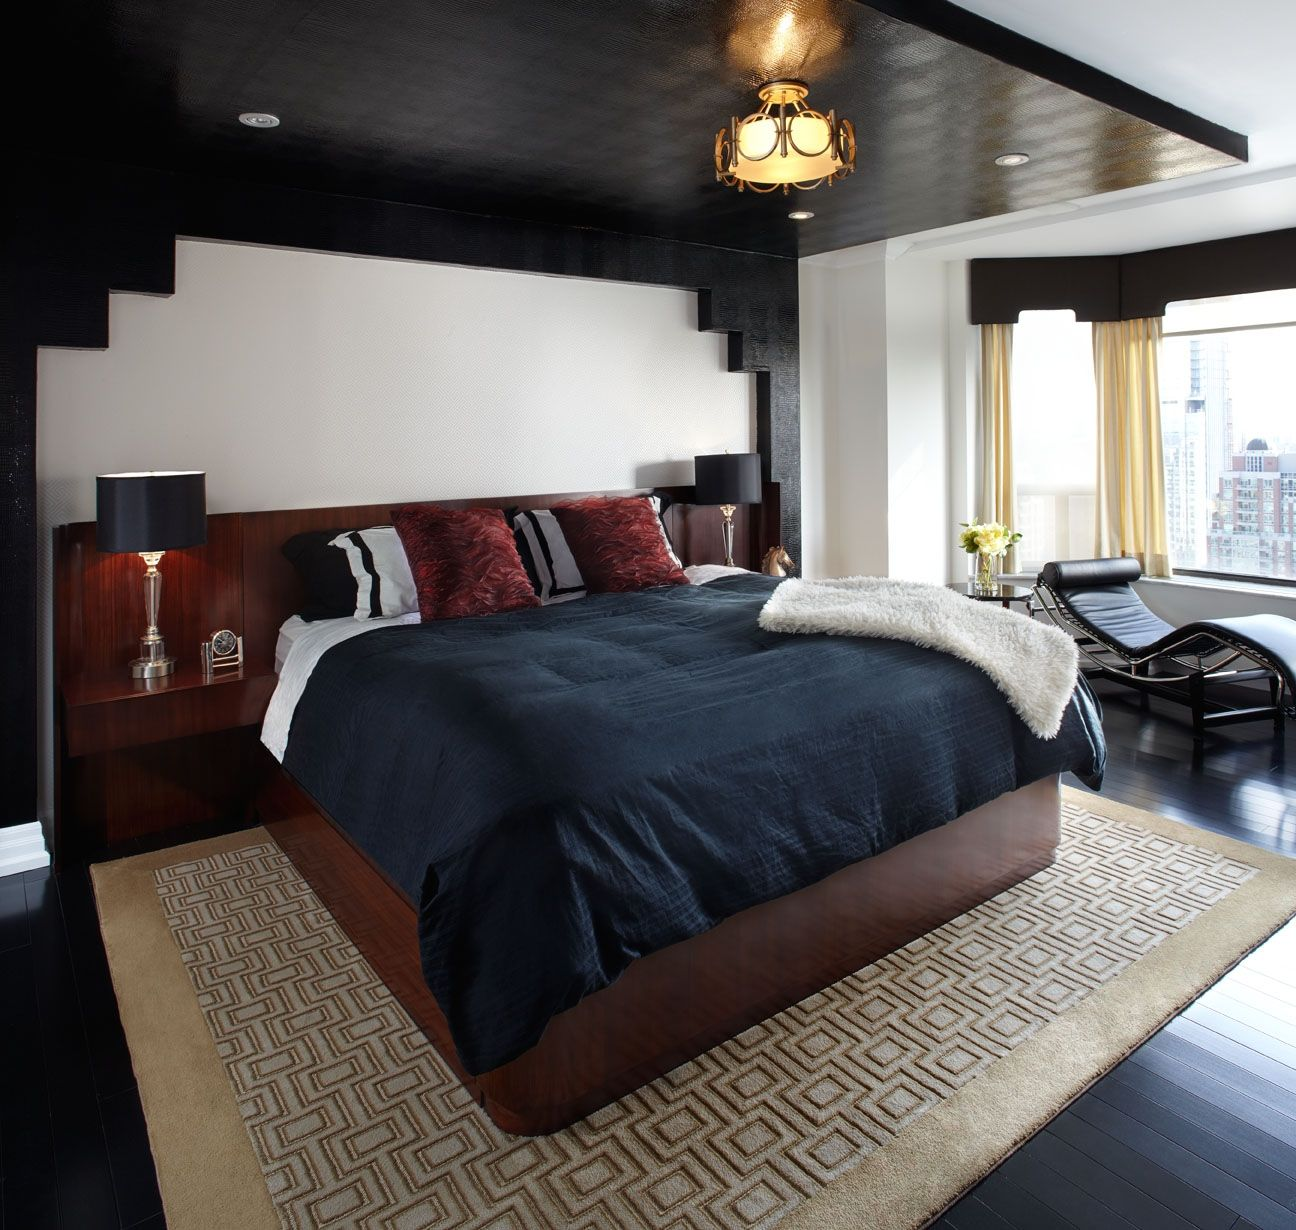 Masculine bedroom with black ceiling, navy bedspread and built-in wood  headboard - LUX